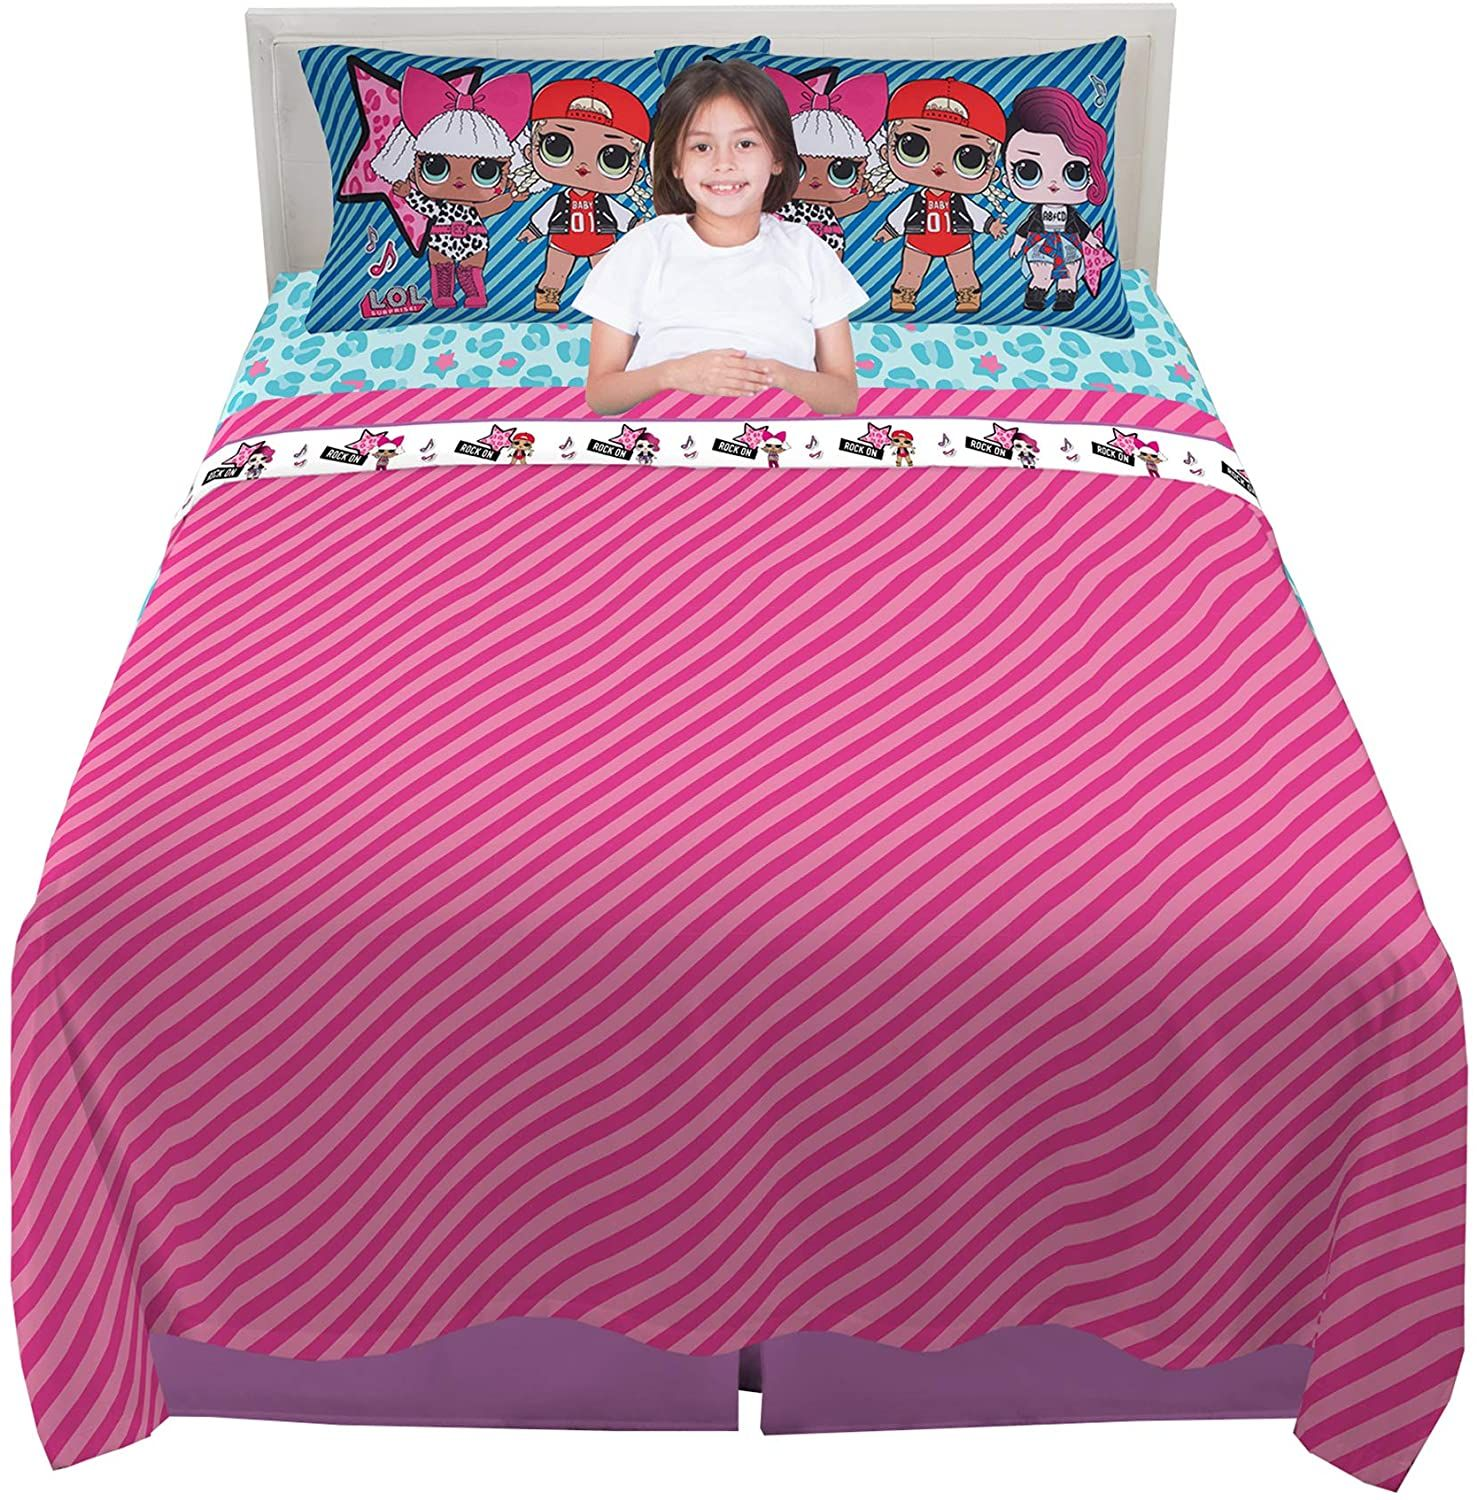 Franco Kinder Bettwäsche Set Superweich 4 Teilig Volle Größe L O L Surprise Kids Bedding Bed Softest Sheets